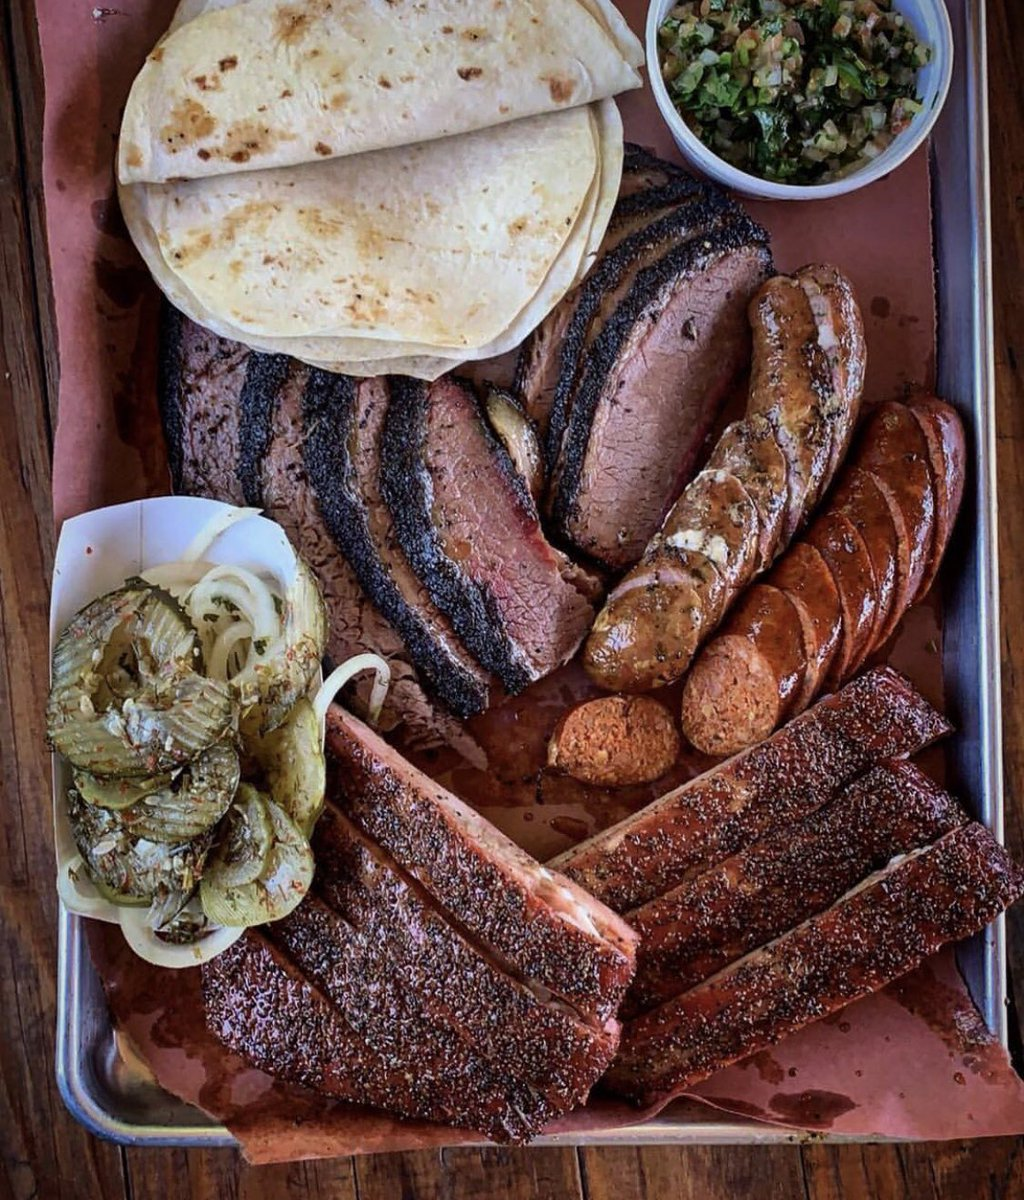 Beautiful spirng day calls for a bbq lunch. Let us do the cooking for y'all. Doors open at 11.